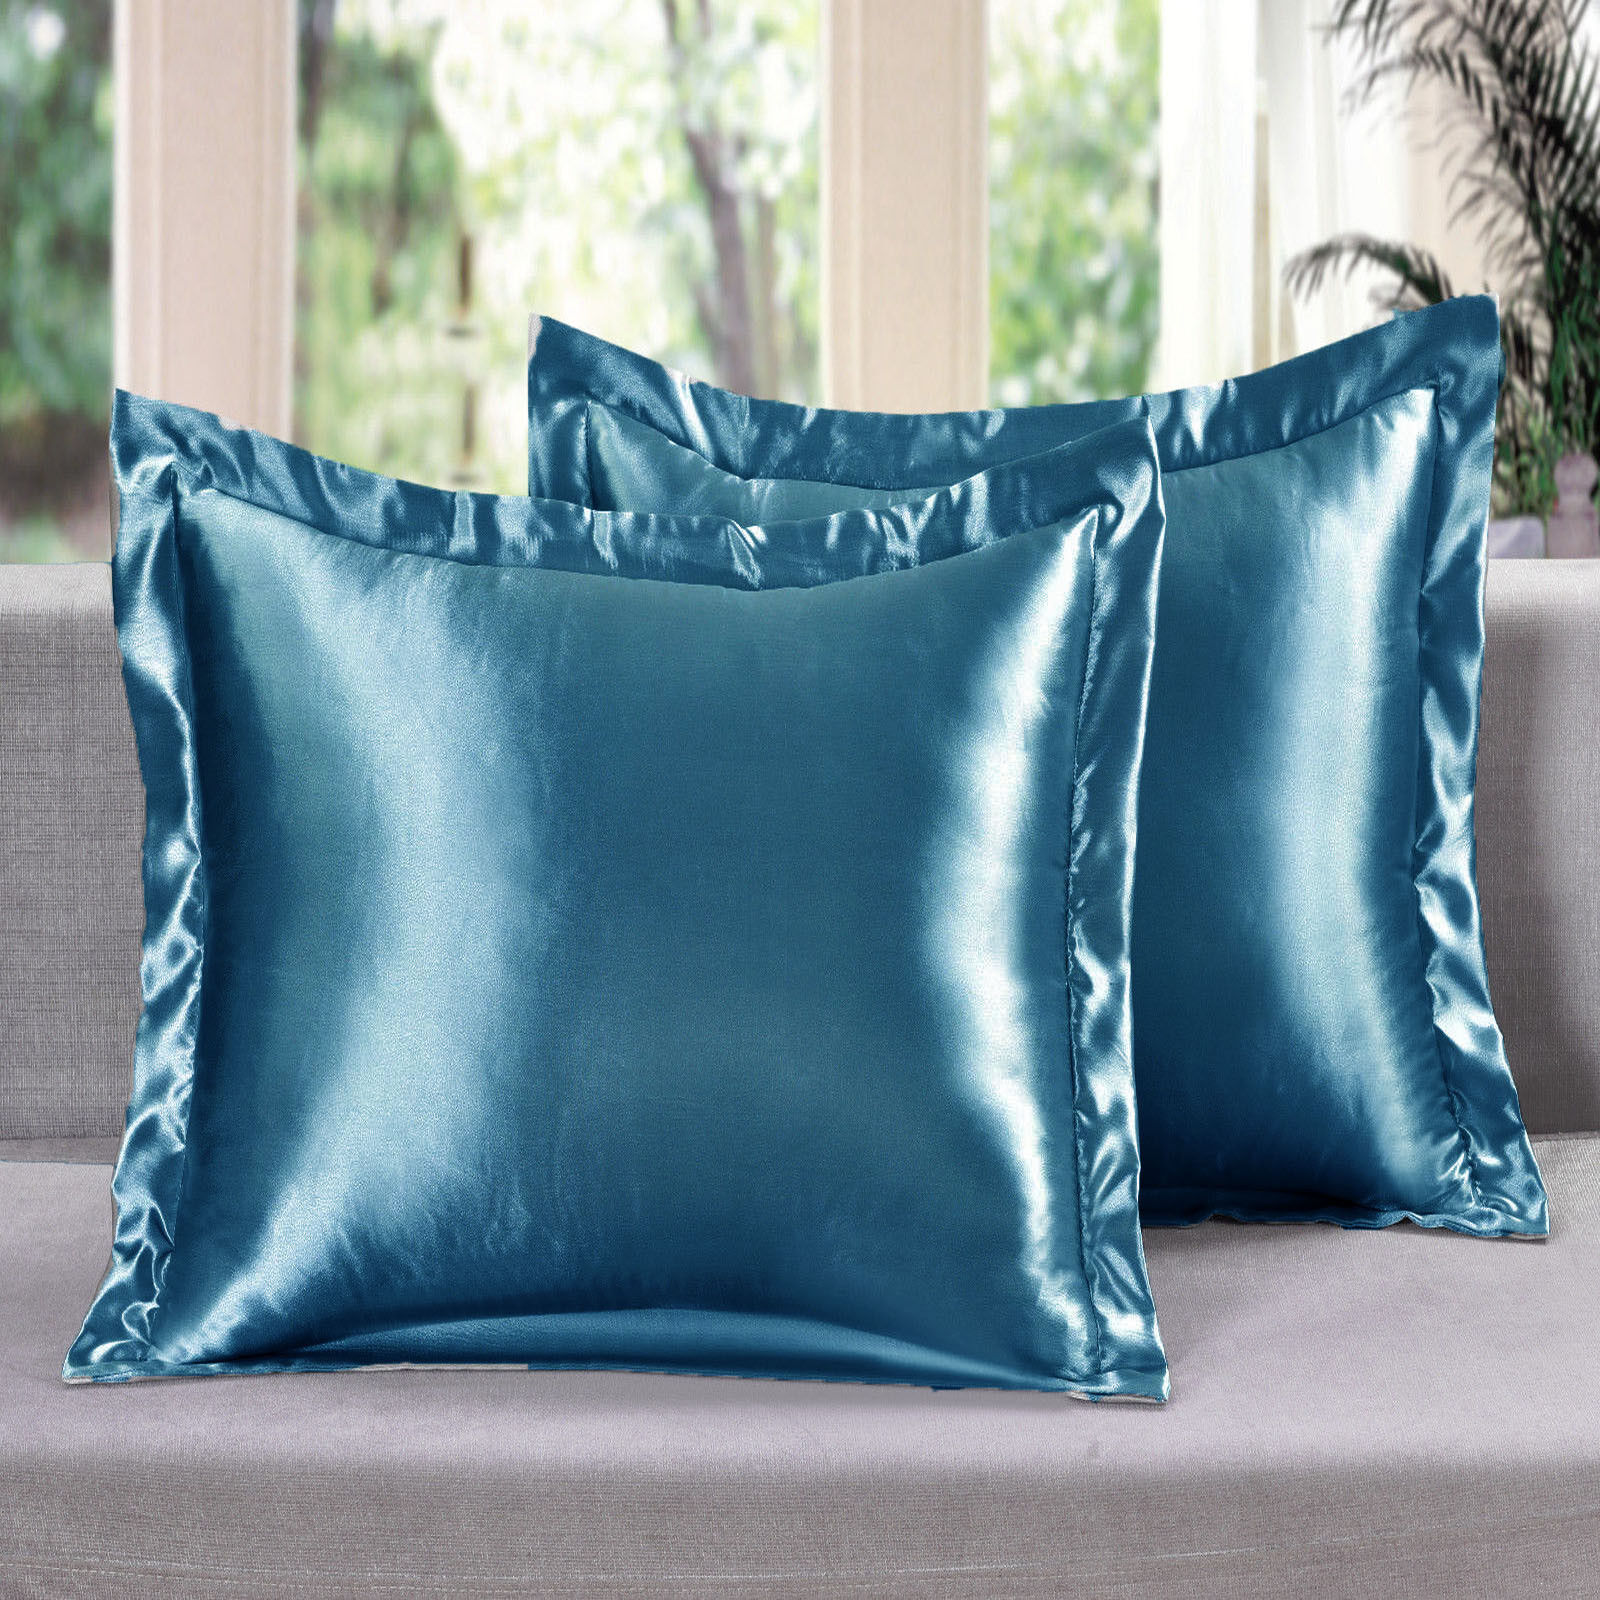 2 Piece Satin Euro Shams Solid Turquoise Cover Case Pillow AT Linen Plus Bedding